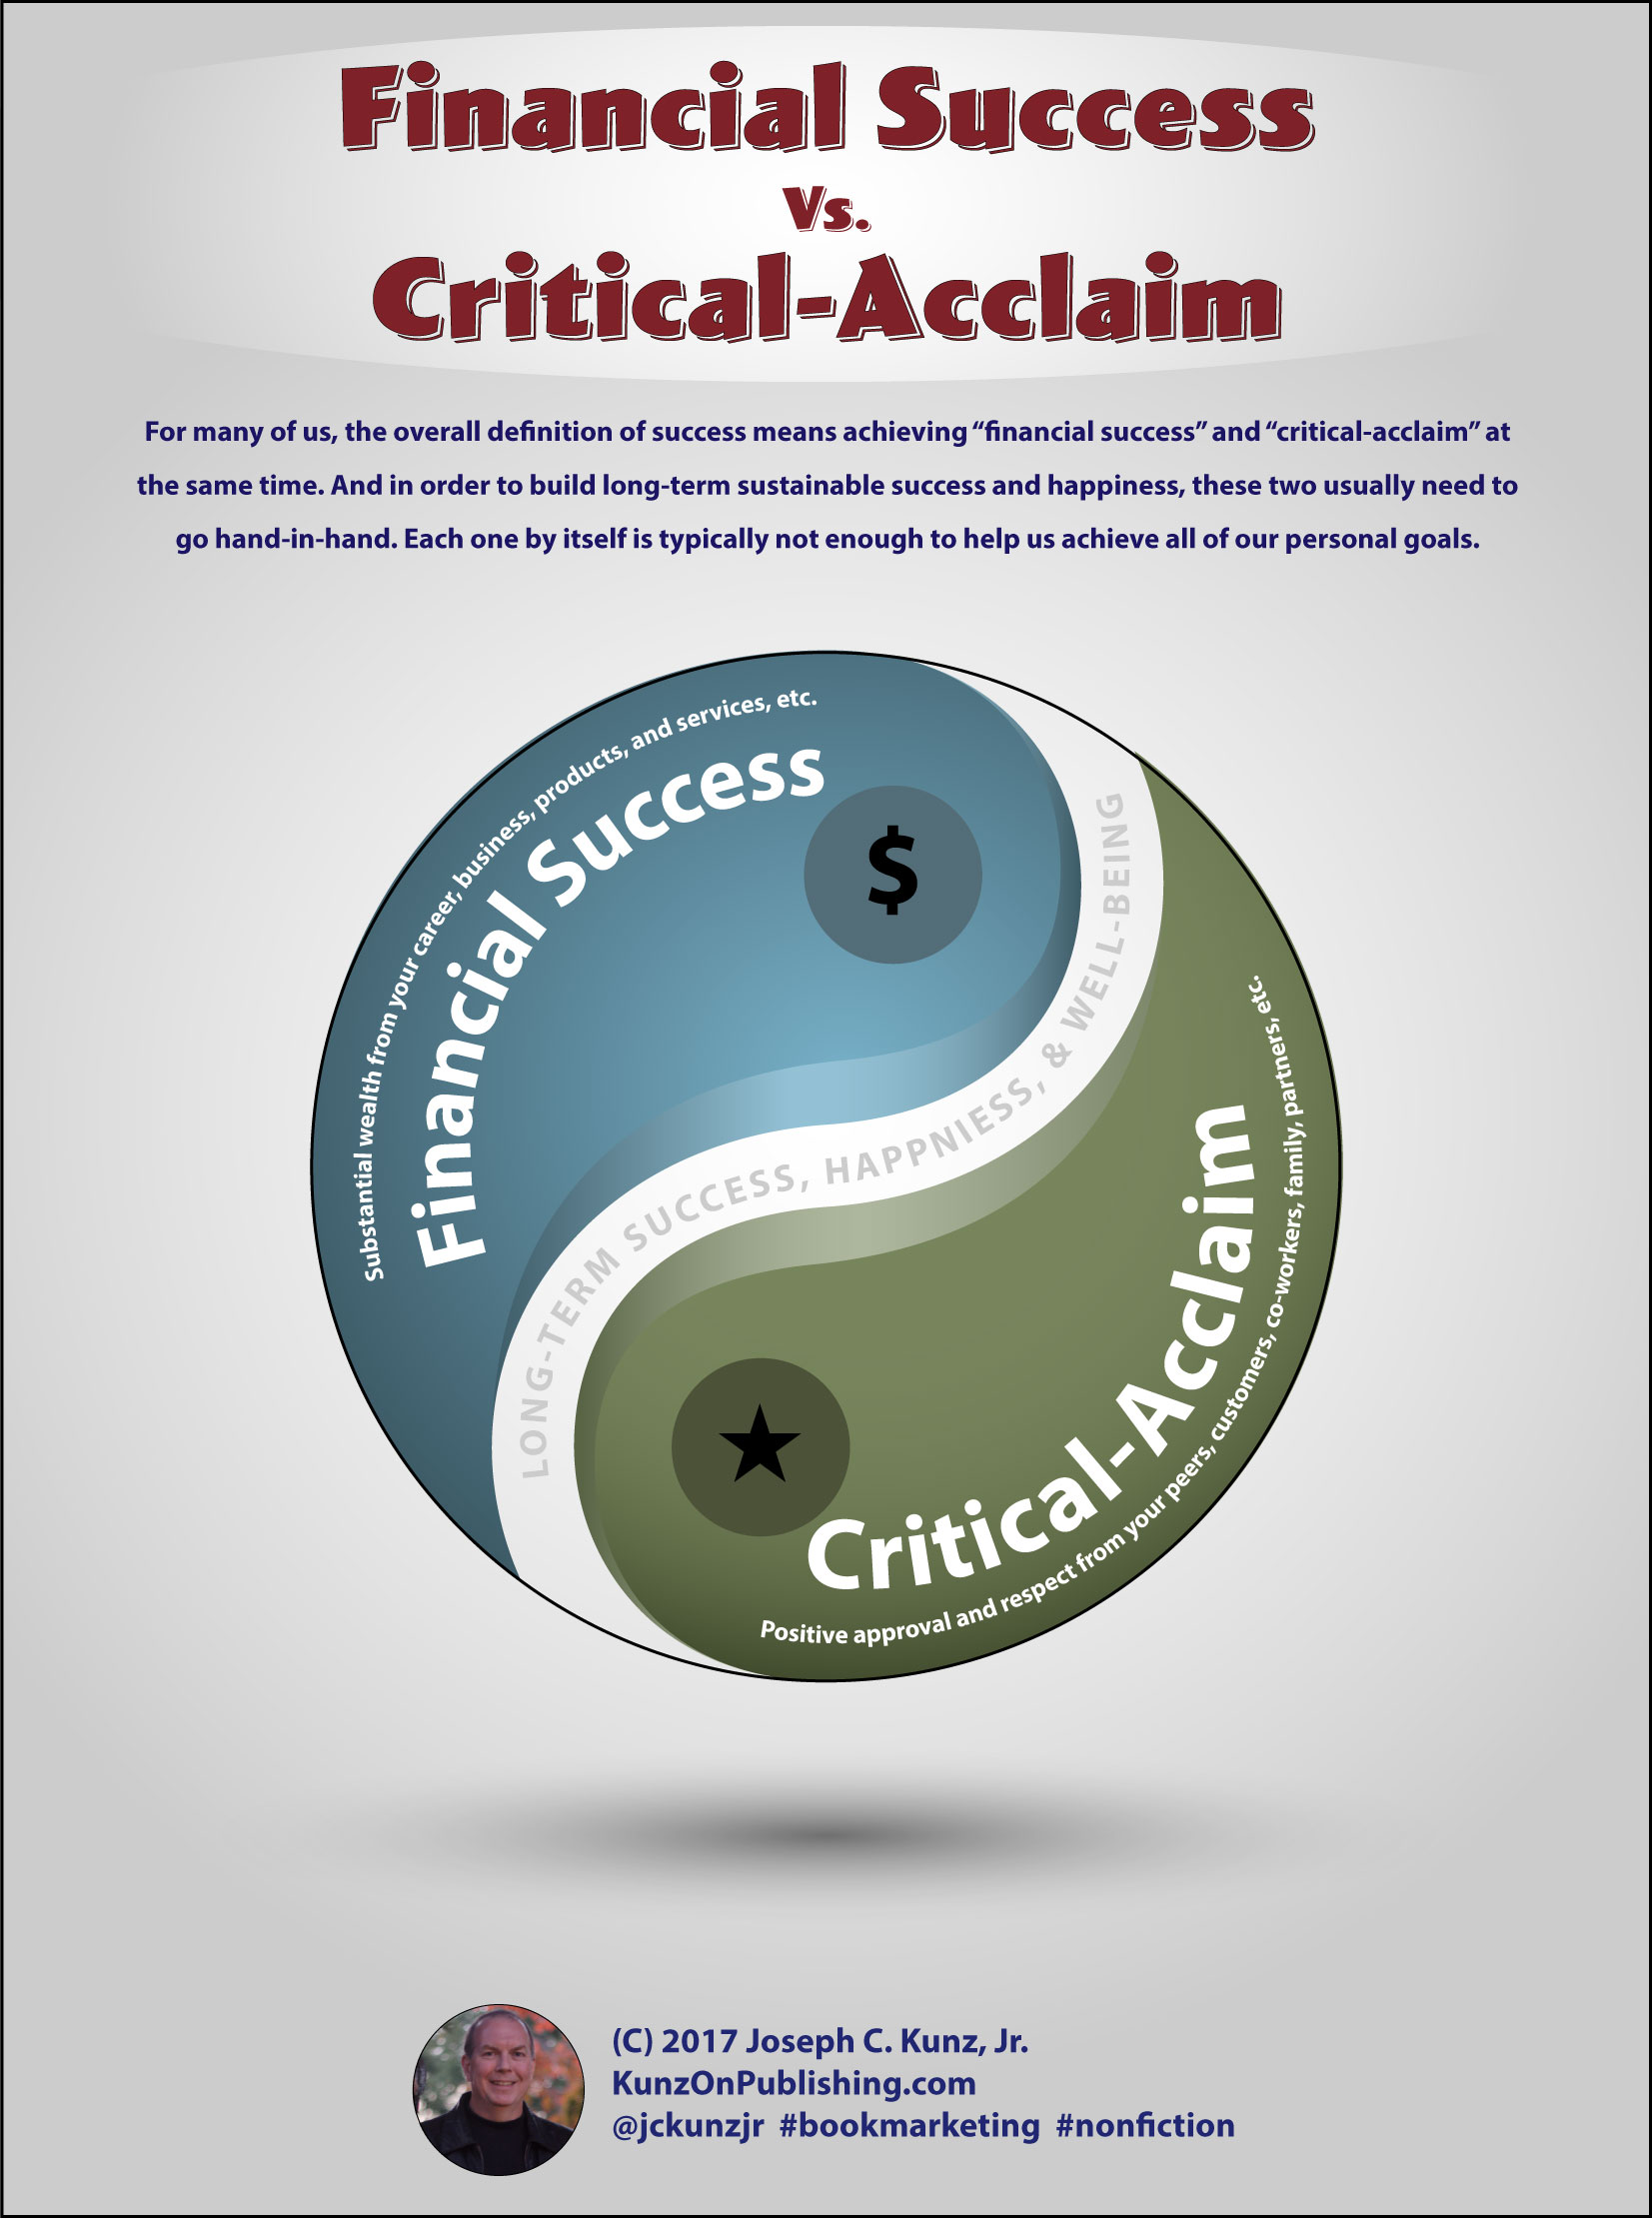 Financial Success Vs Critical-Acclaim